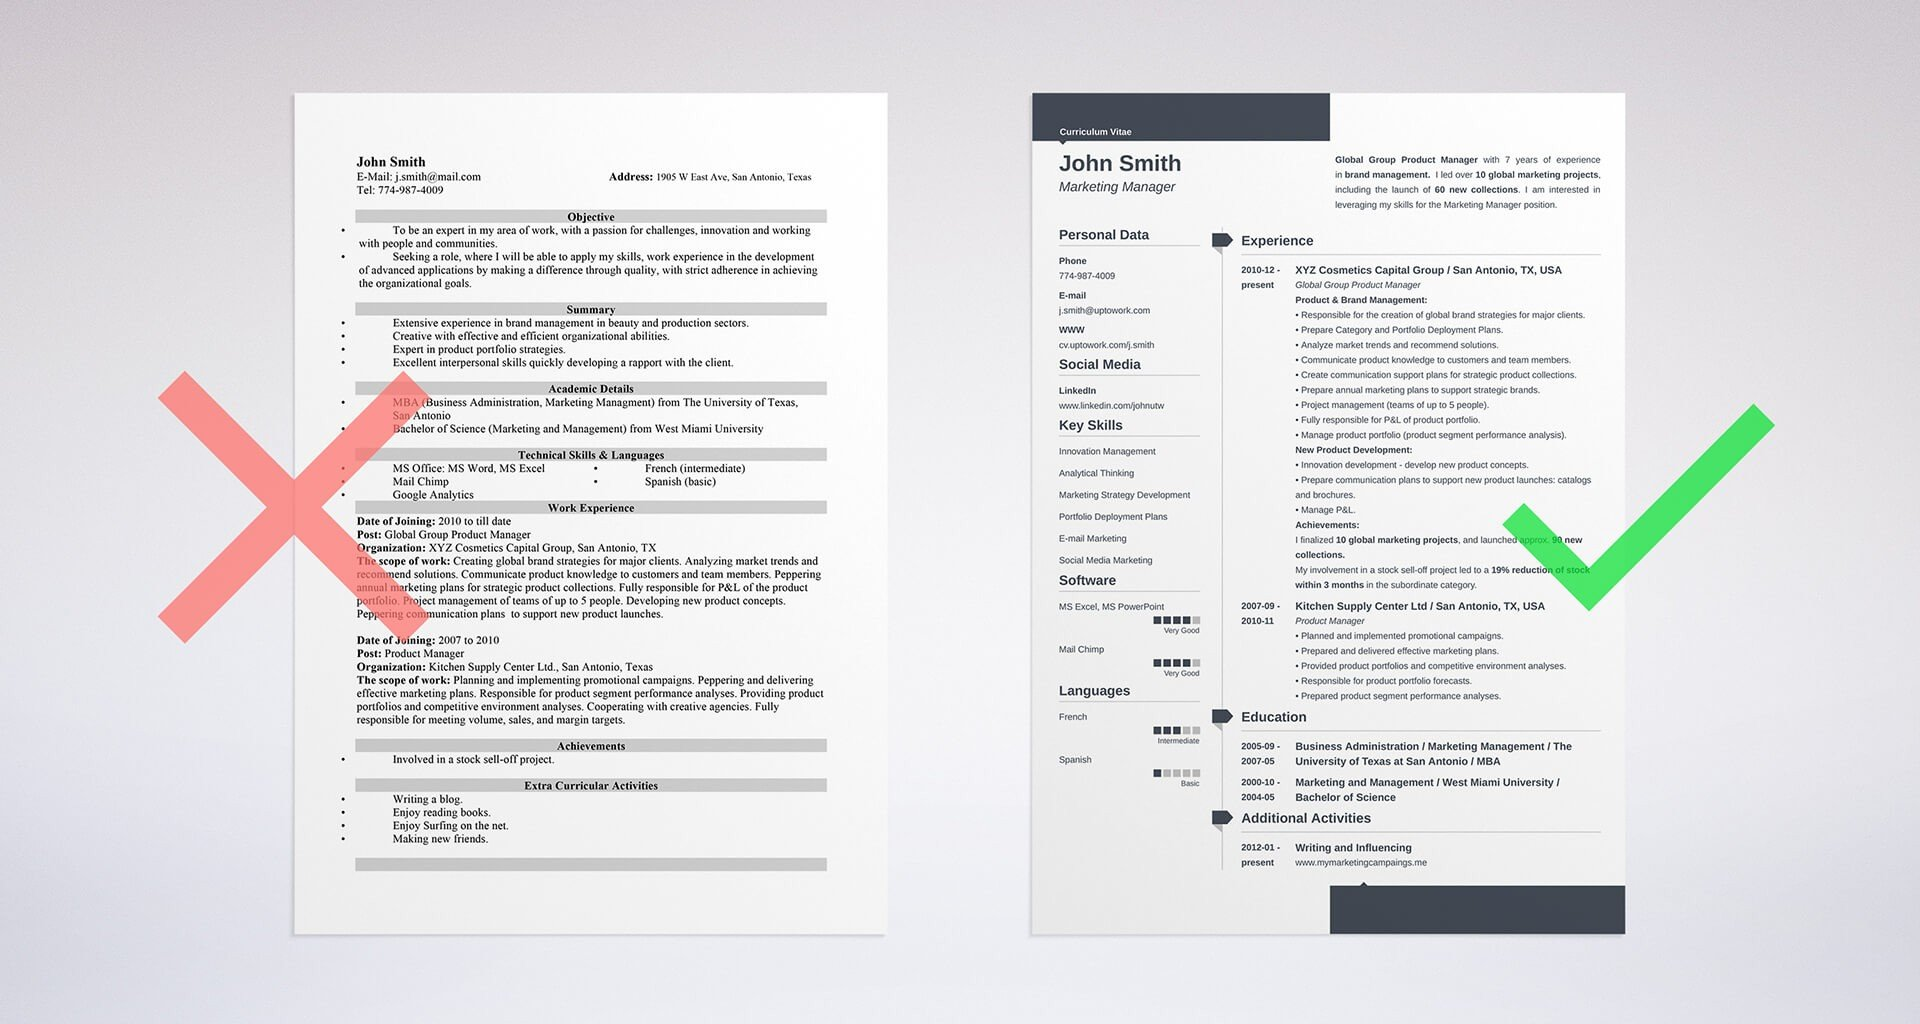 Beautiful Uptowork Regarding How To Present A Resume